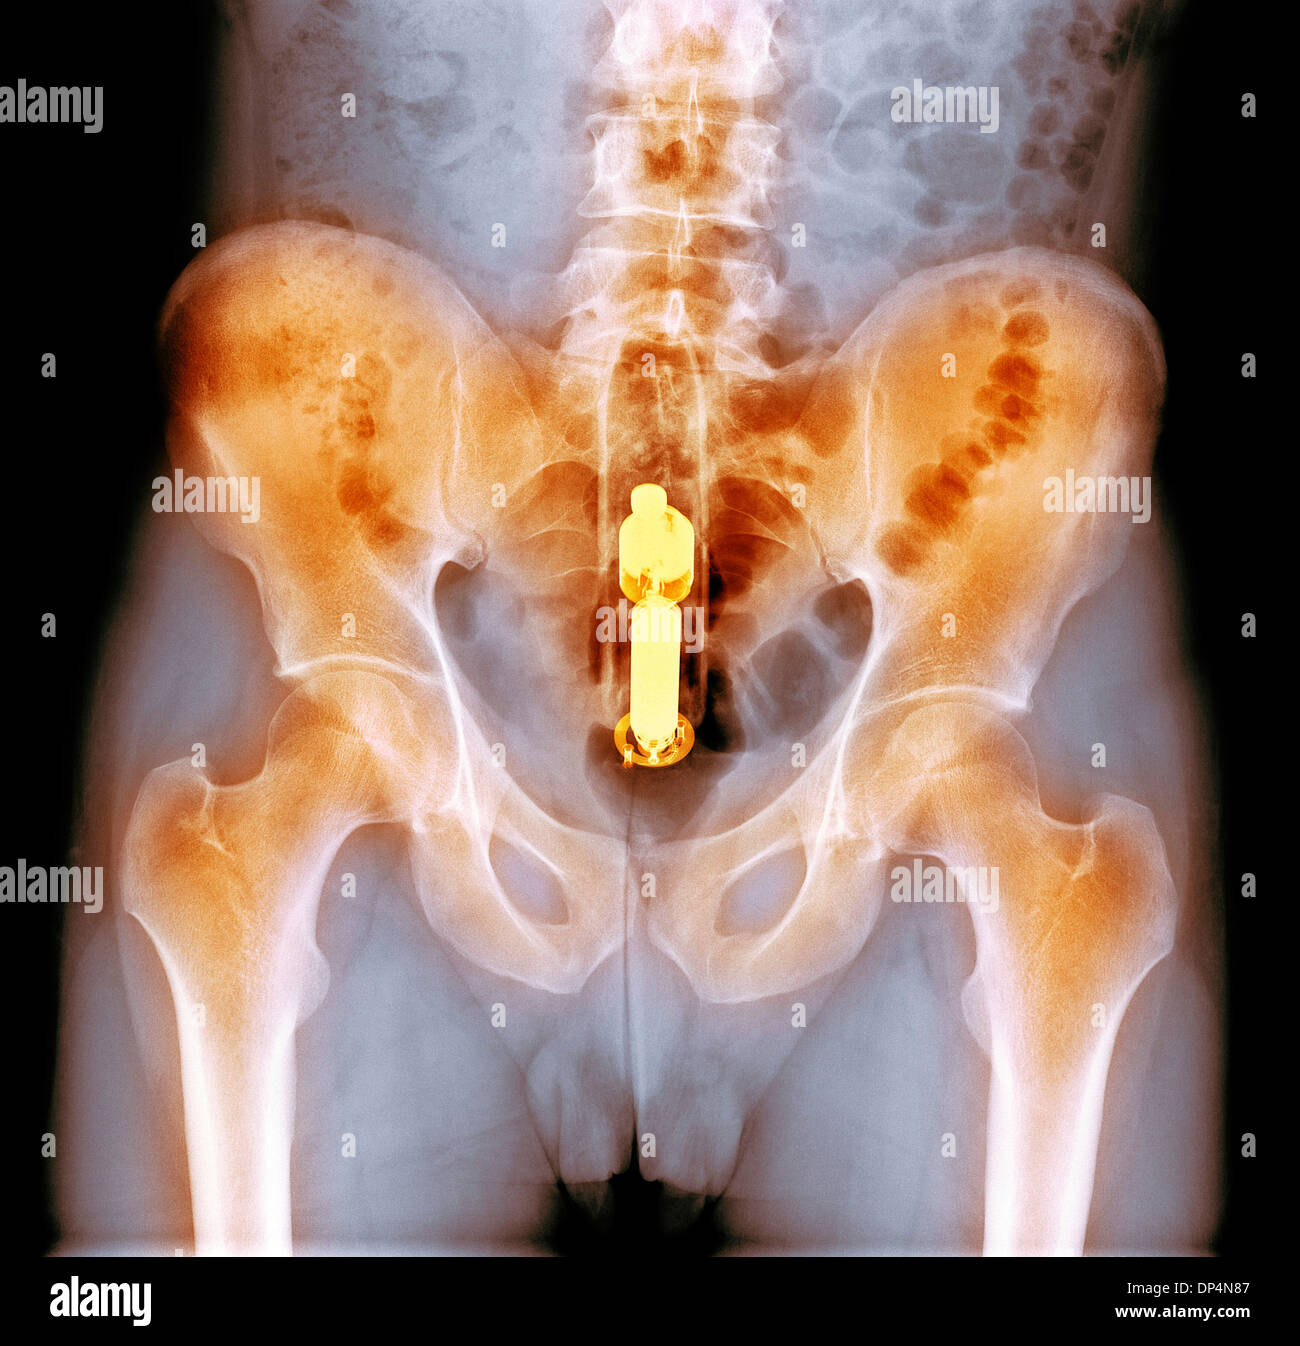 Foreign object in rectum, X-ray - Stock Image